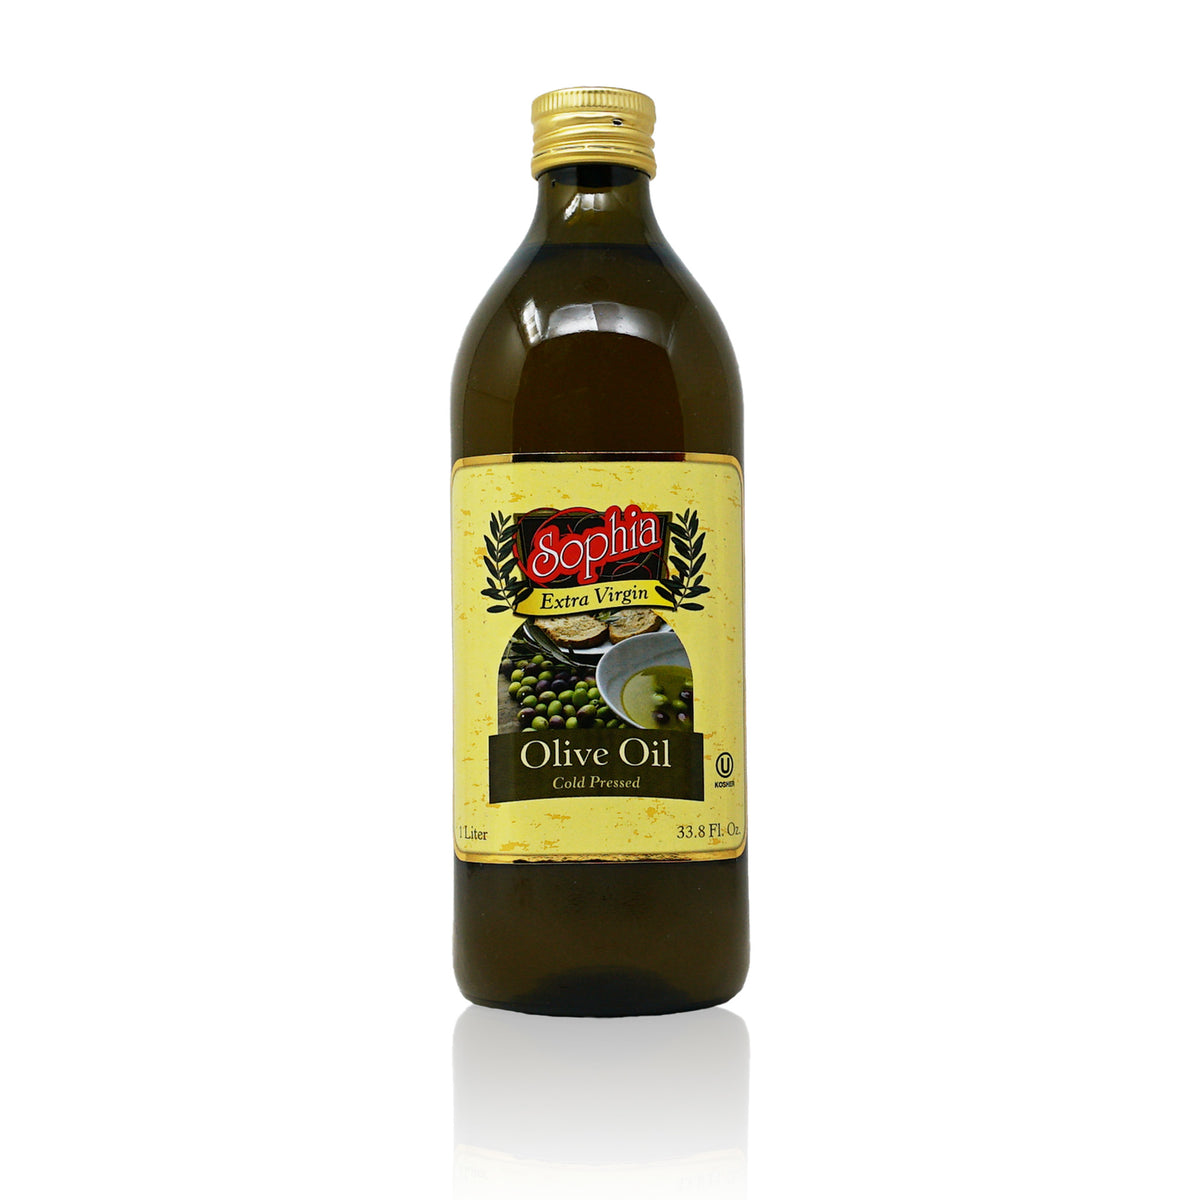 Sophia Oil - Extra Virgin Olive Oil